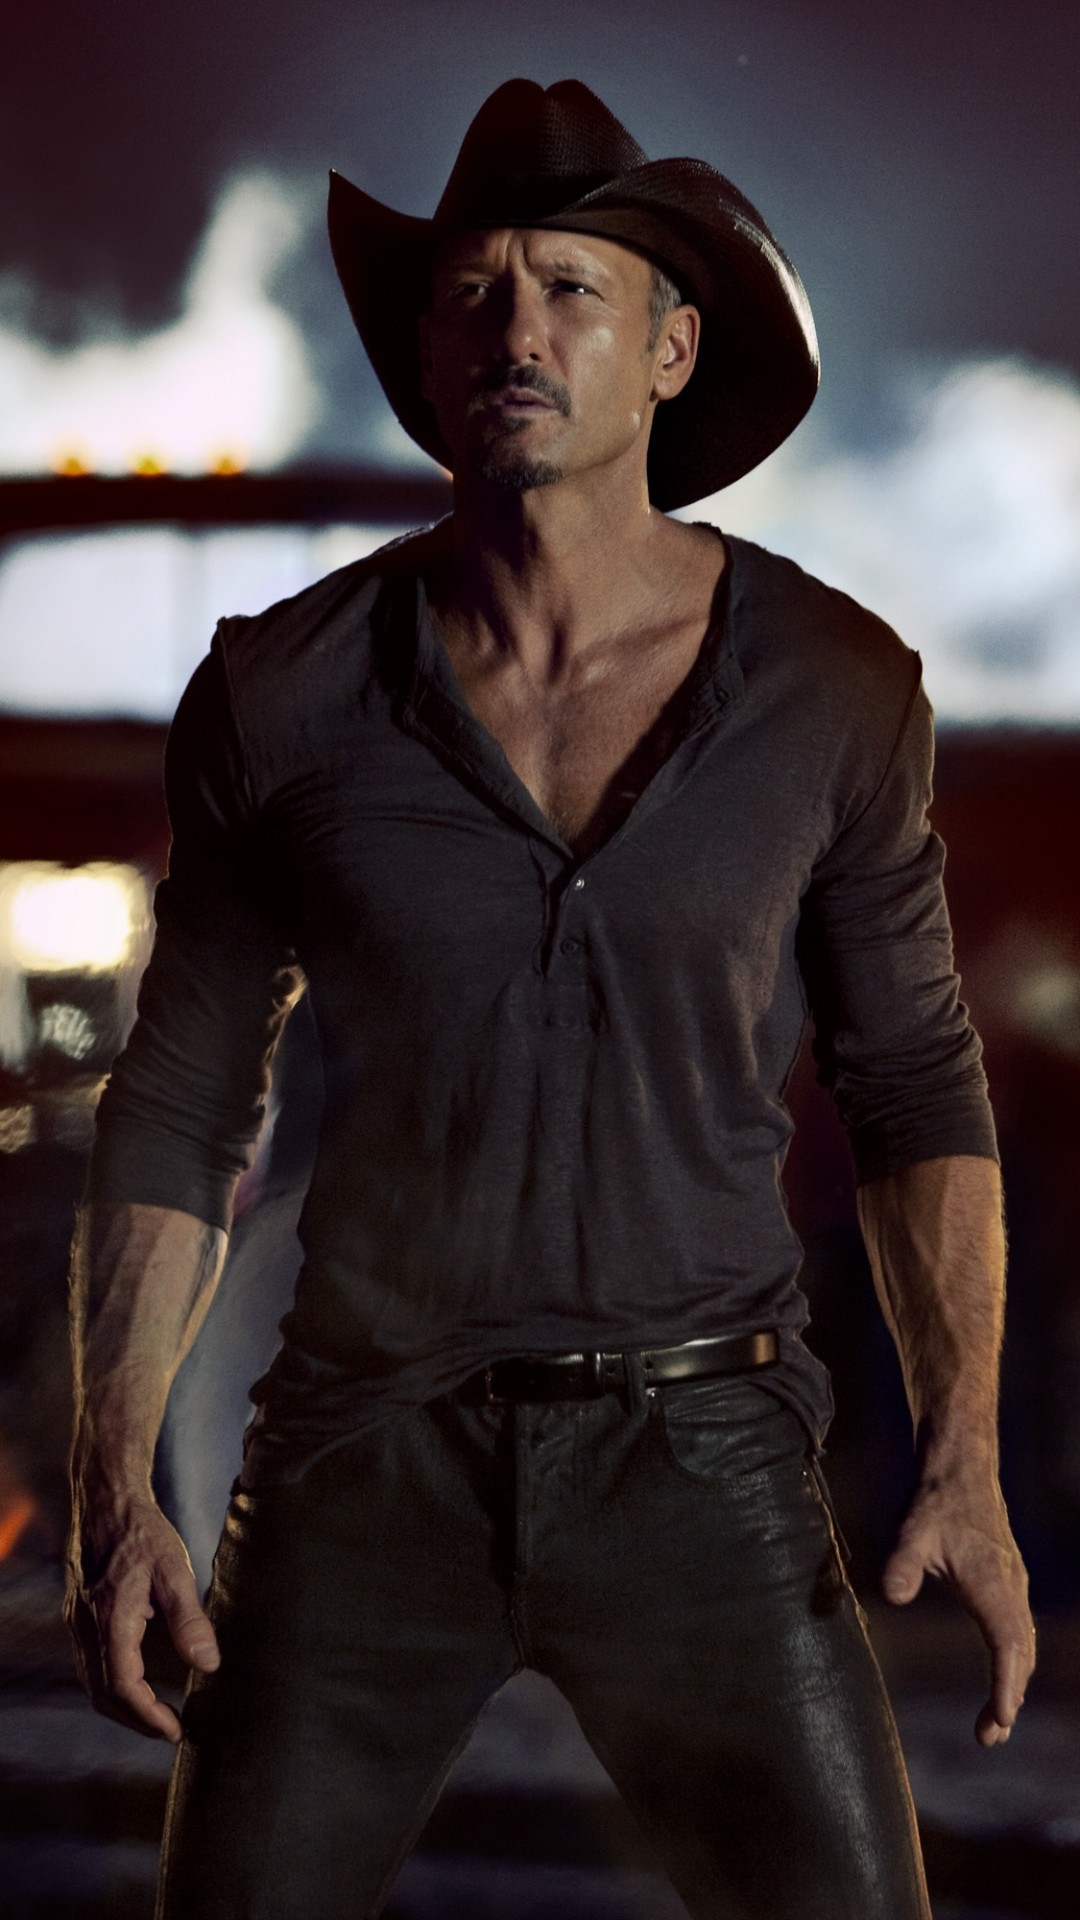 Wallpaper Tim Mcgraw Top Music Artist And Bands Singer